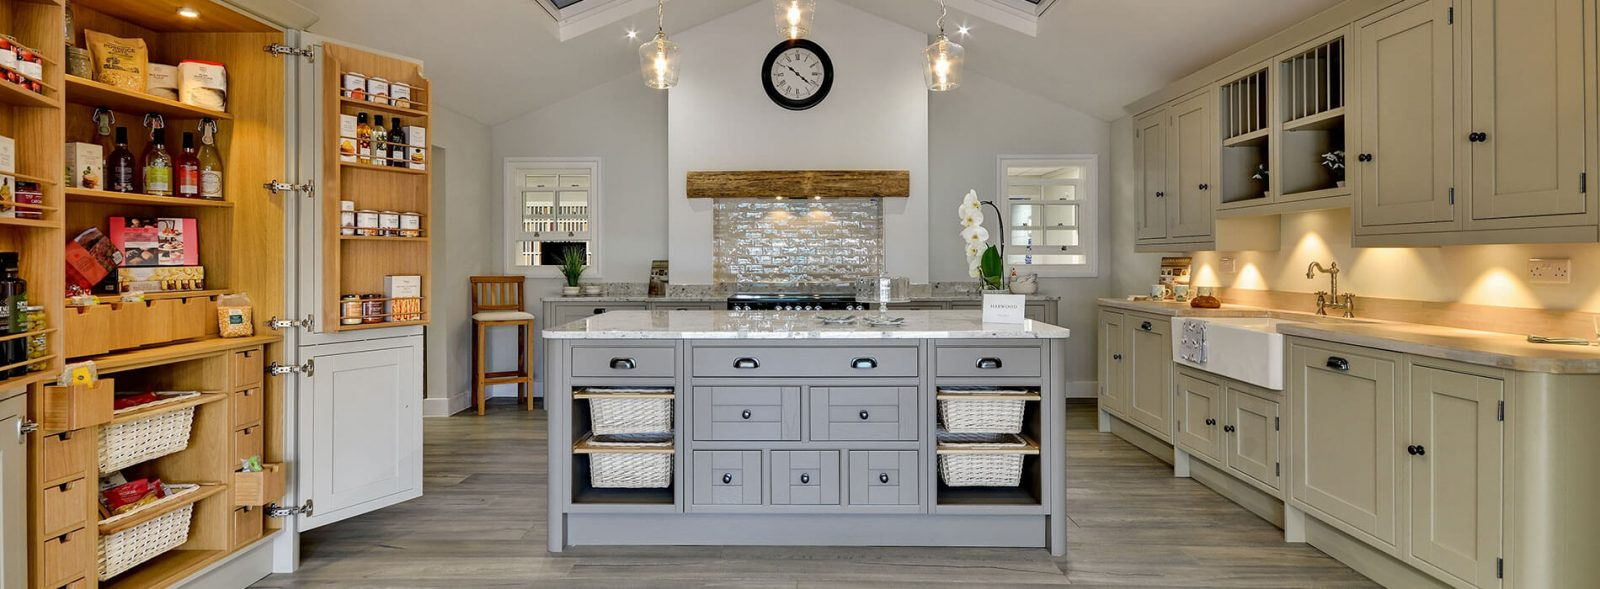 Top 10 Kitchen Blogs To Inspire You Jewson Kitchens